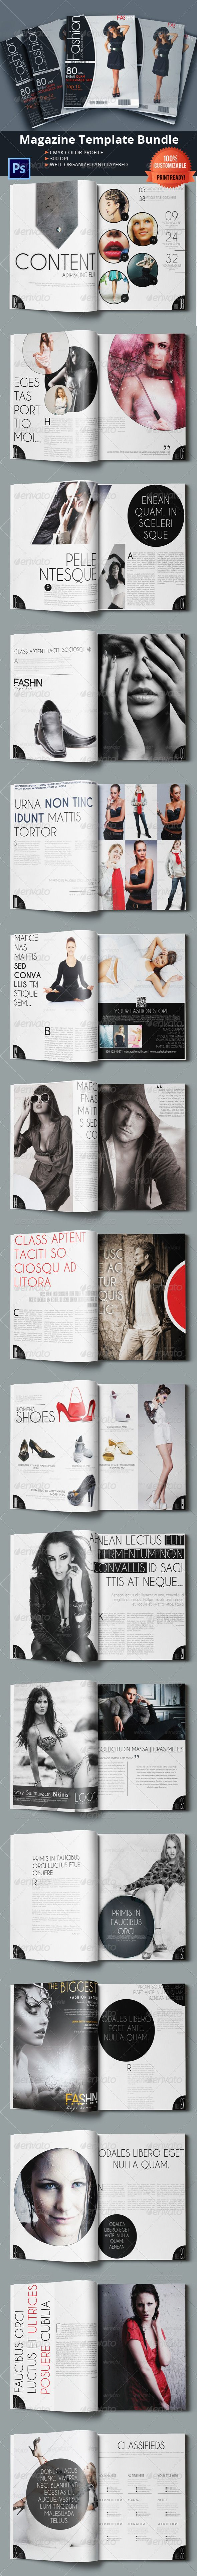 Creative Fashion Magazine  #brochure #business #catalog • Available here → http://graphicriver.net/item/creative-fashion-magazine/6069333?s_rank=18&ref=pxcr